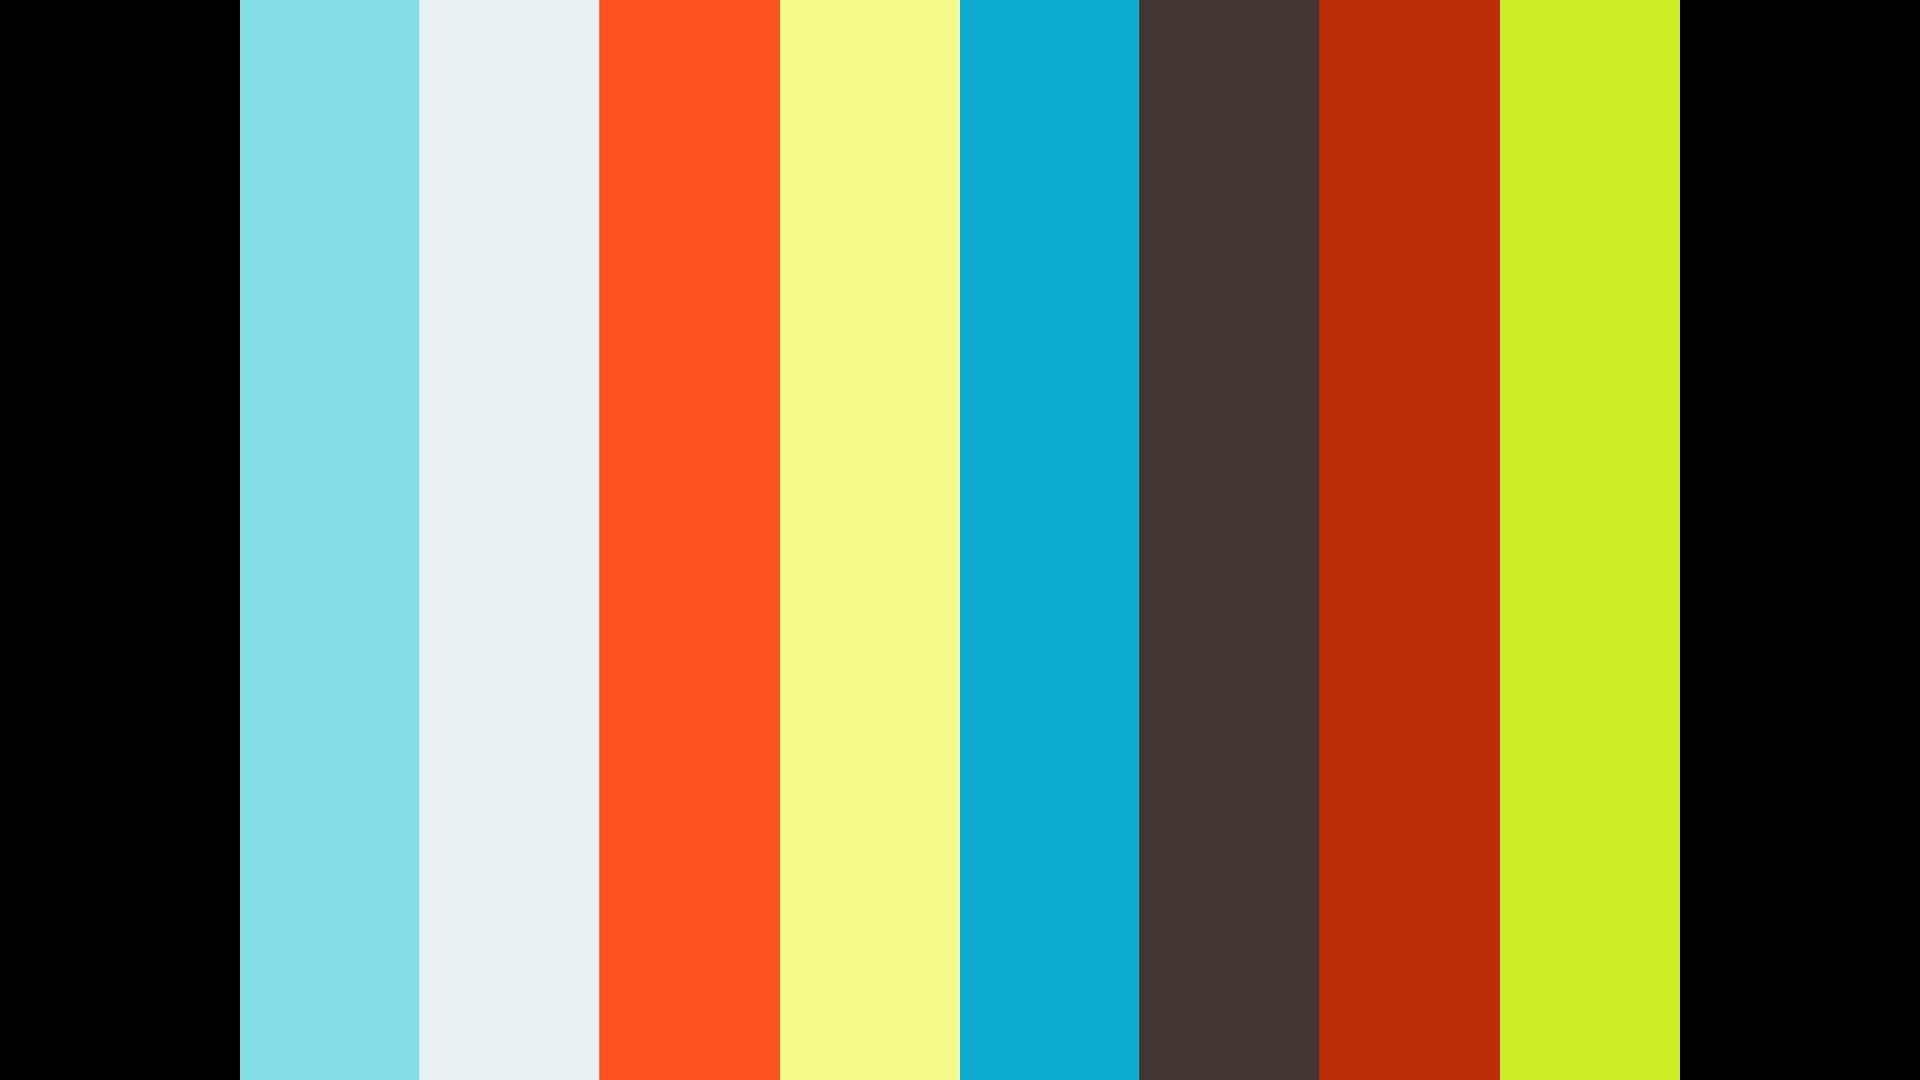 Building a Zacuto Next Gen Recoil - Stop Motion